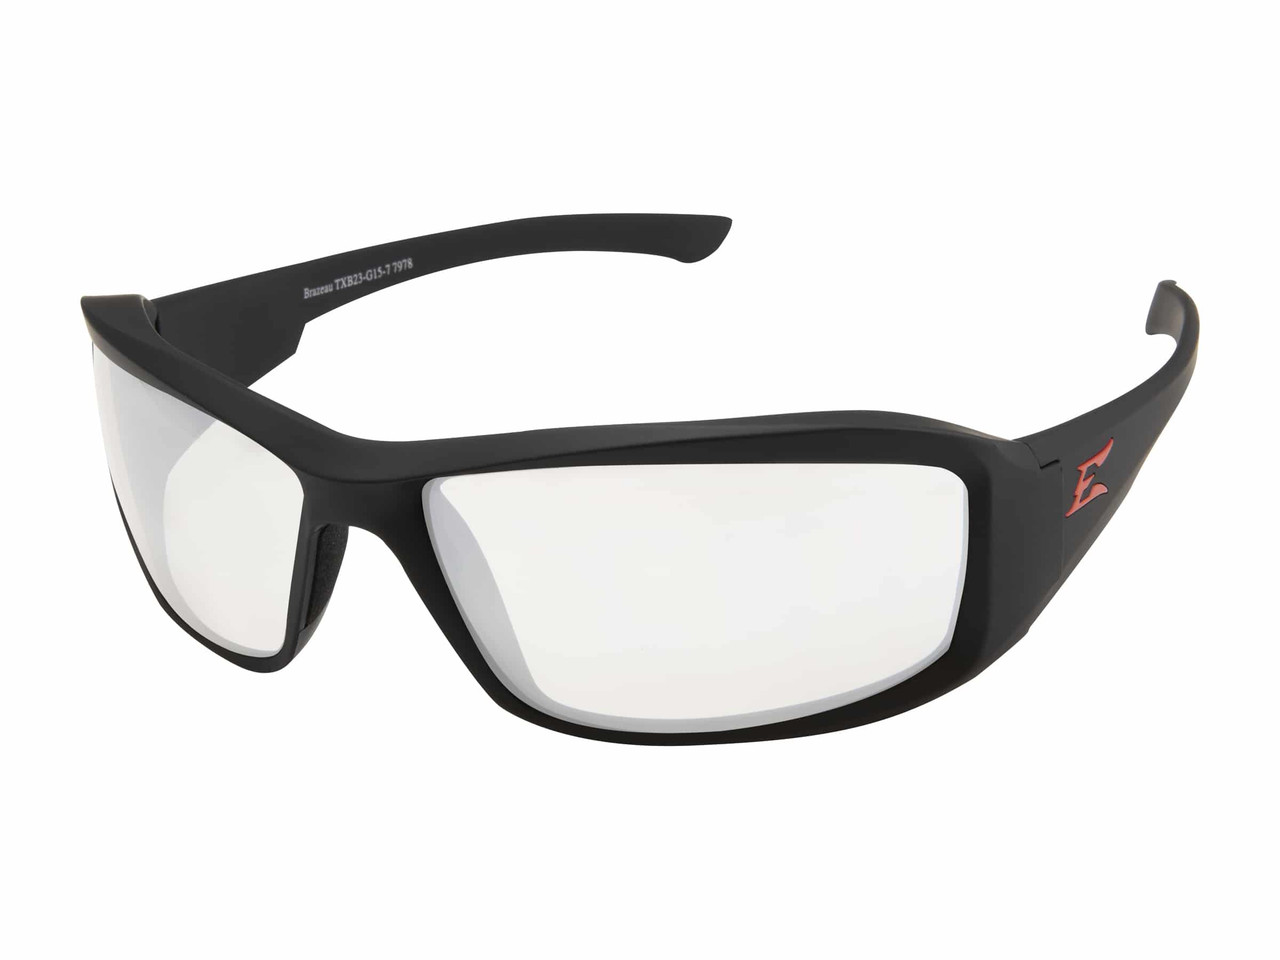 The Edge Brazeau - Torque - Clear with Vapor Shield Safety Glasses